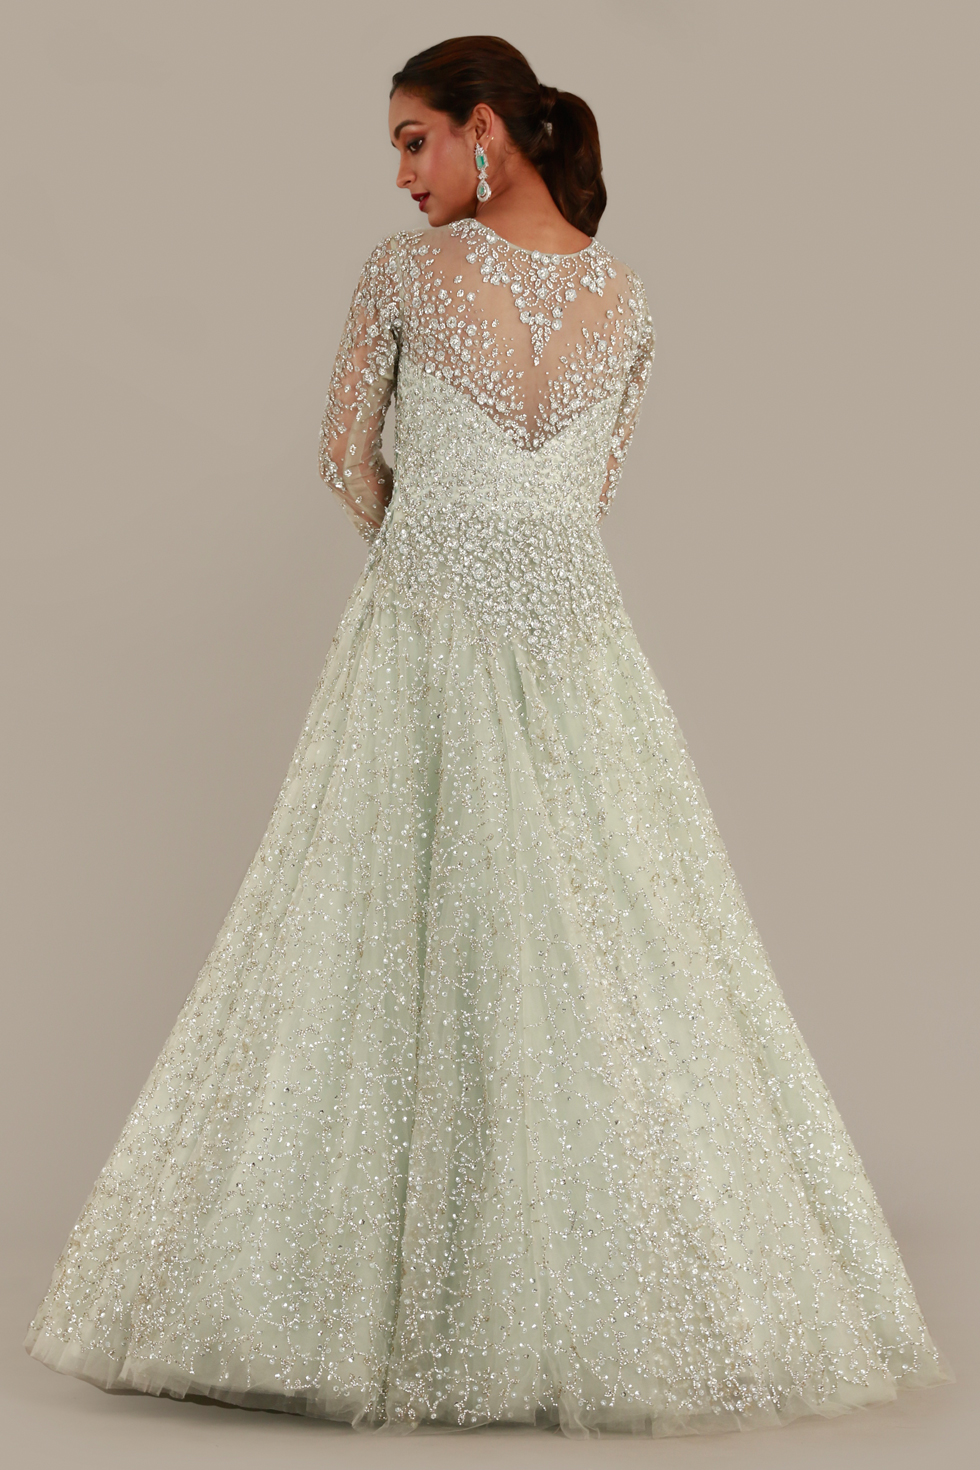 Pastel green tulle gown with illusion sleeves, silver embroidery and stone work embellishments